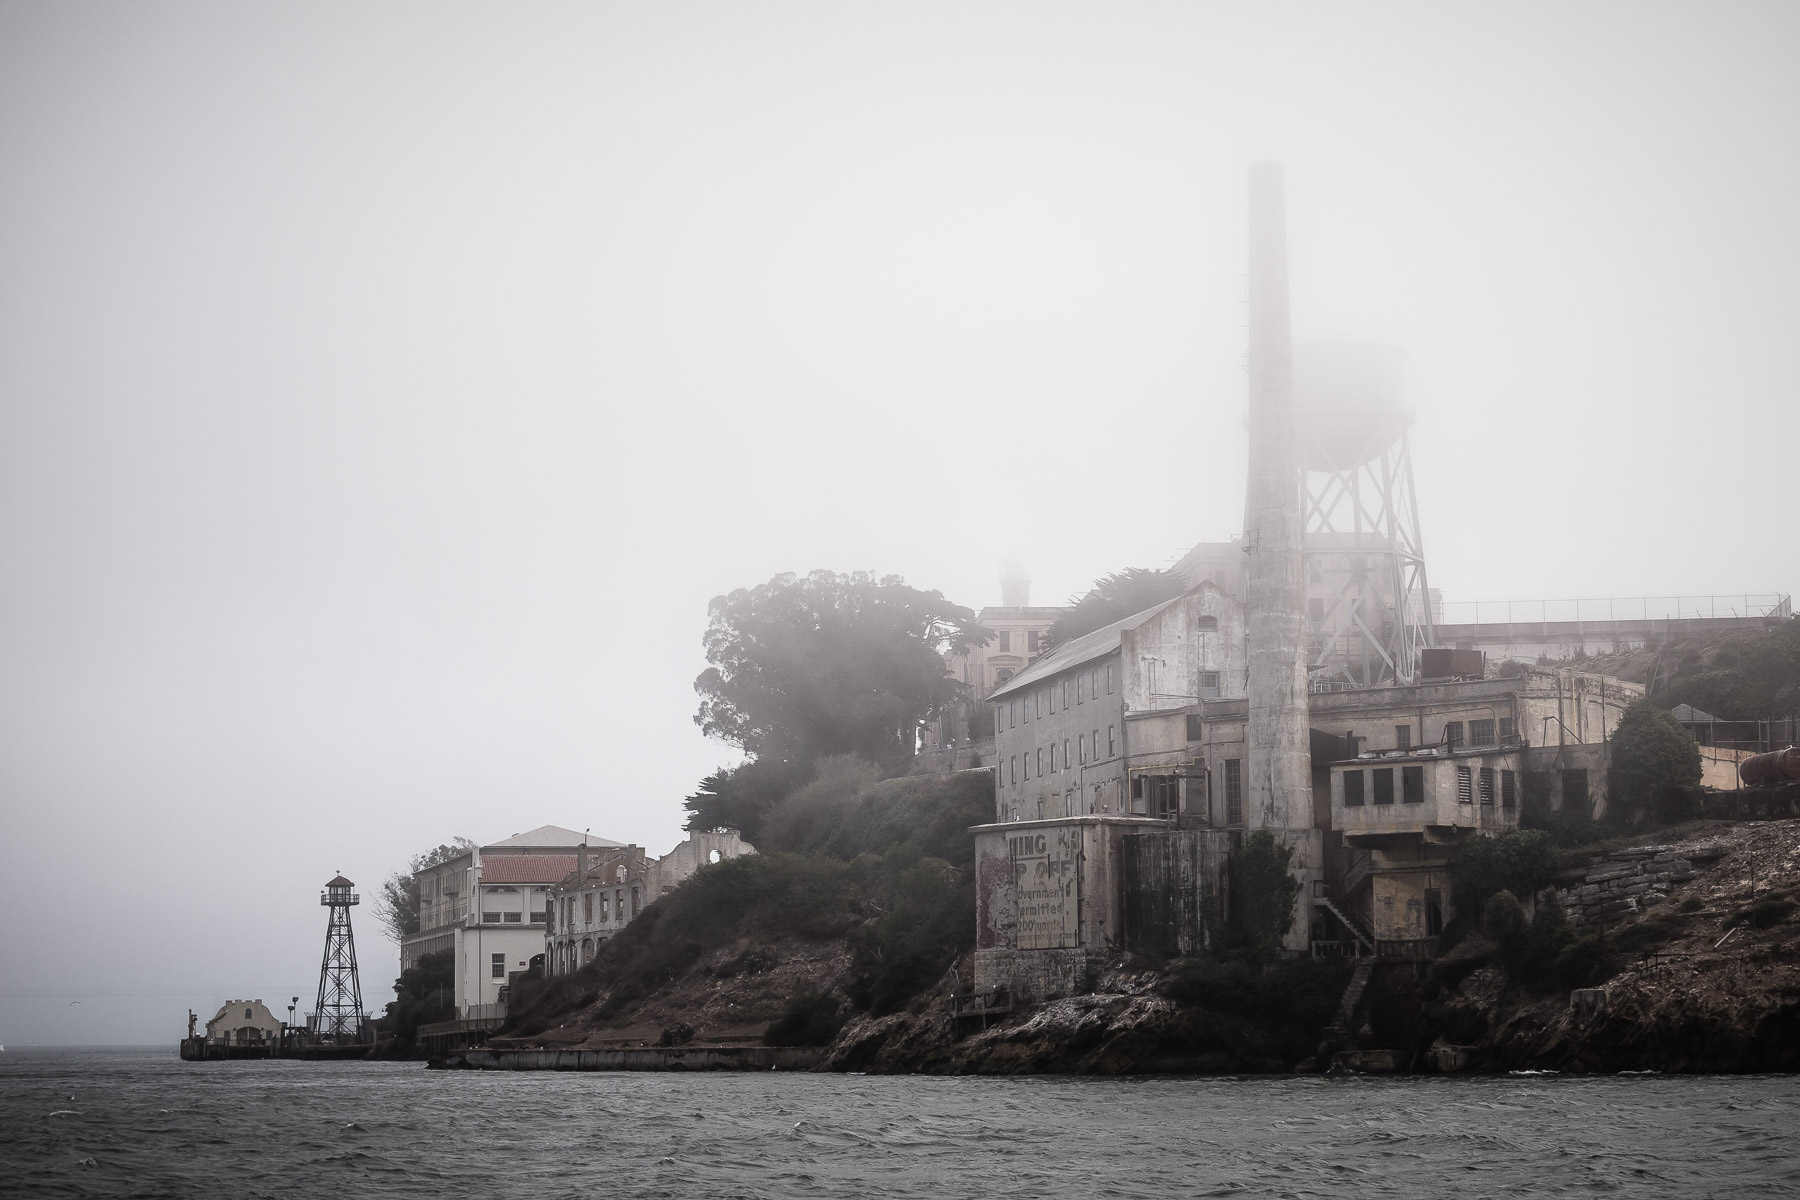 The historic Alcatraz Island sits in San Francisco Bay, partially shrouded by the fog.